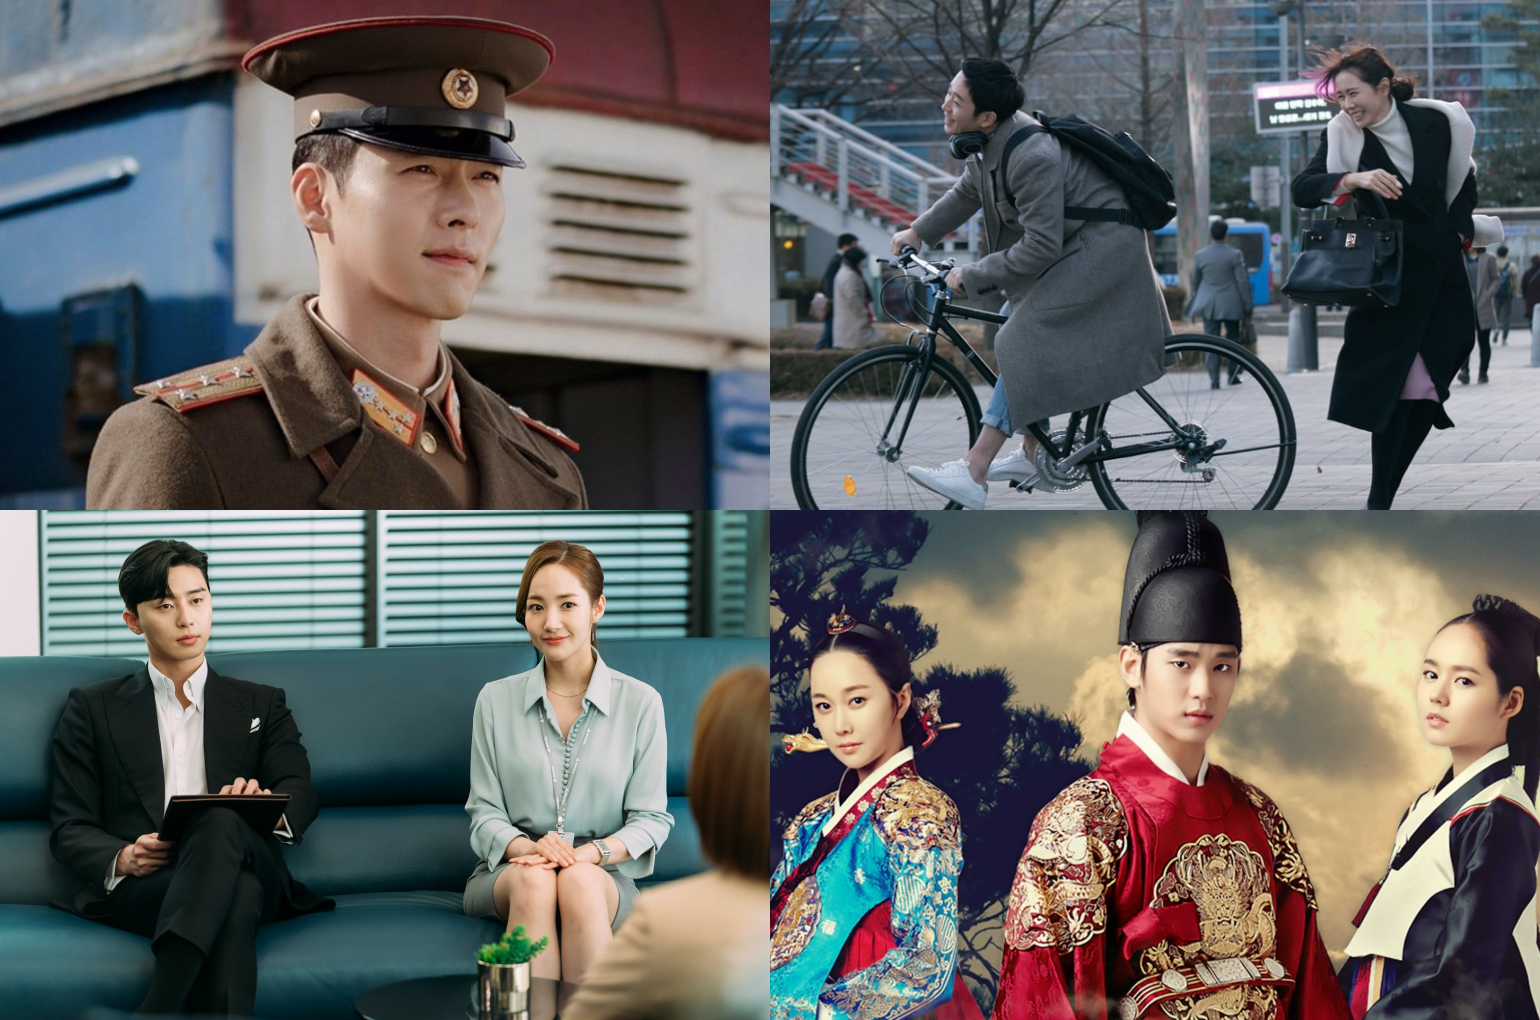 Clockwise (from top left): Crash Landing On You, Something in the Rain, Moon Embracing The Sun, What's Wrong With Secretary Kim?